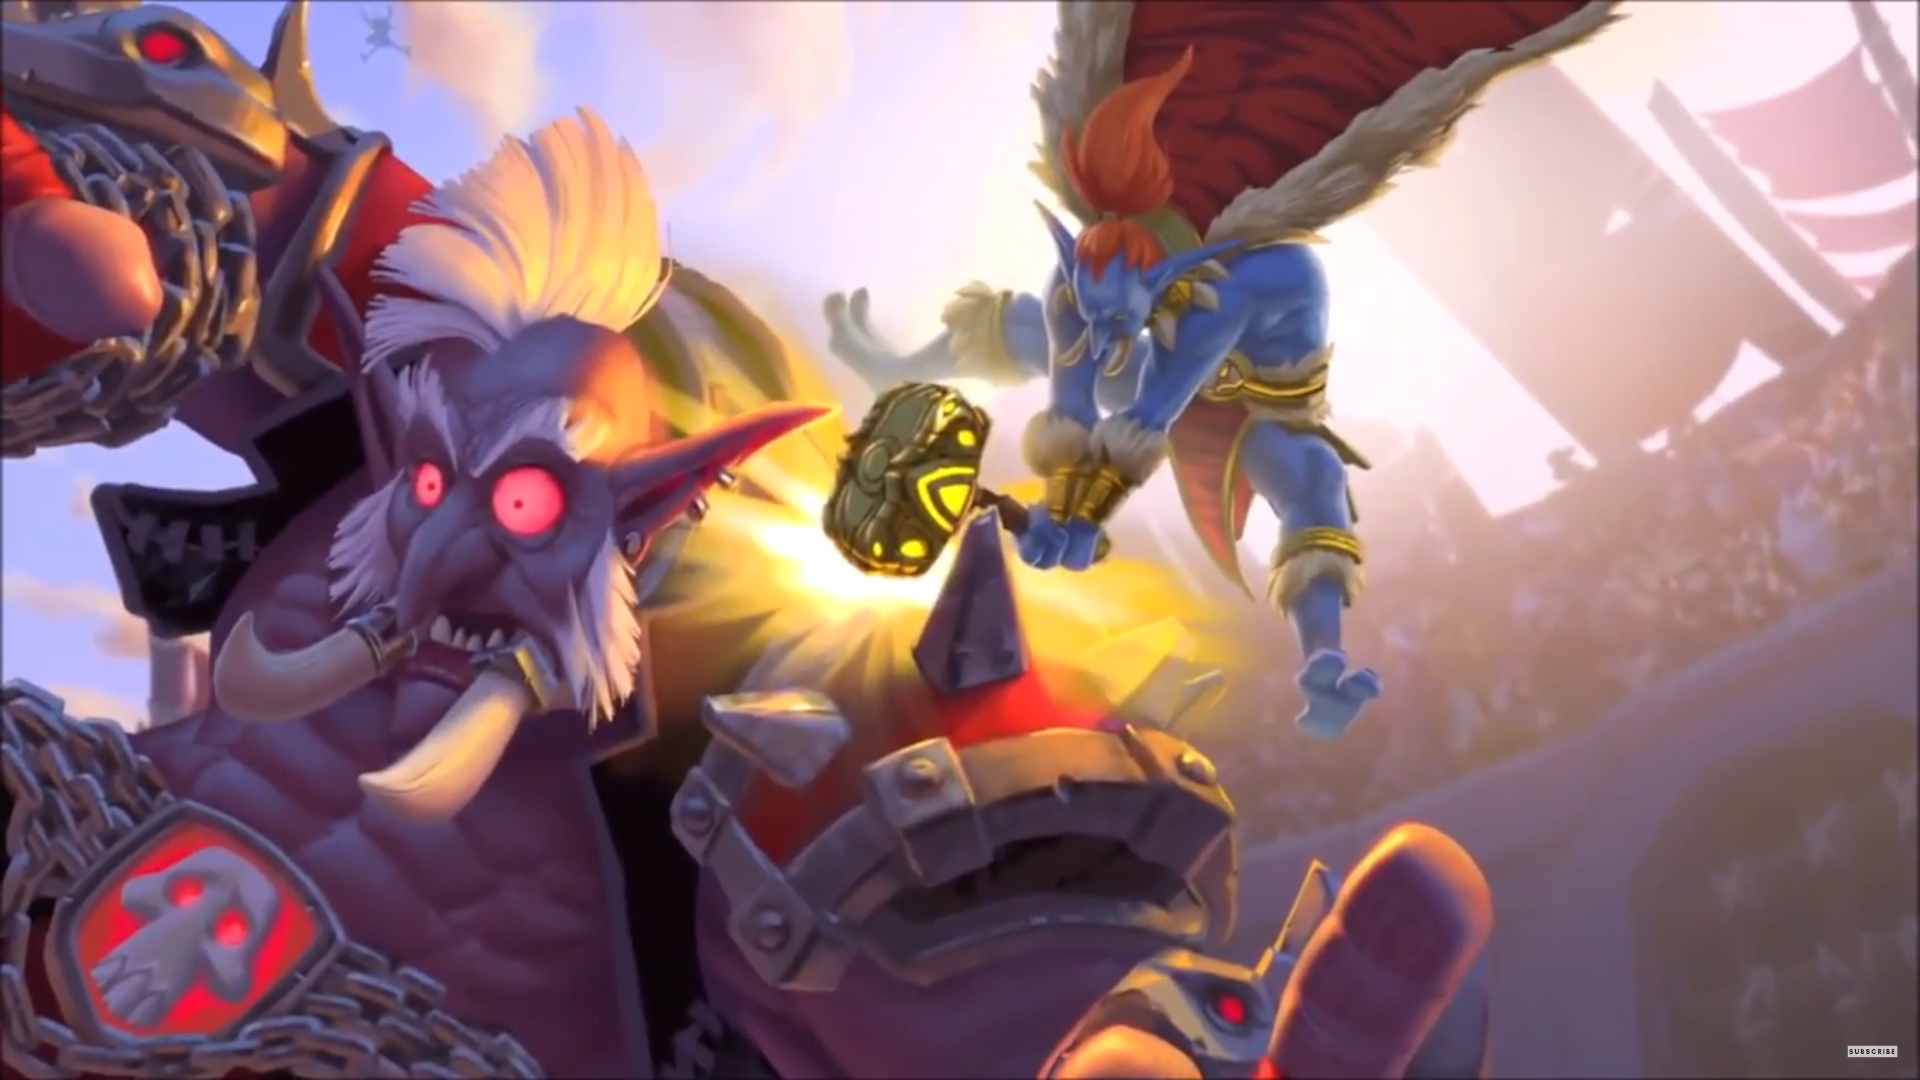 36 new cards revealed in Hearthstone's final Livestream